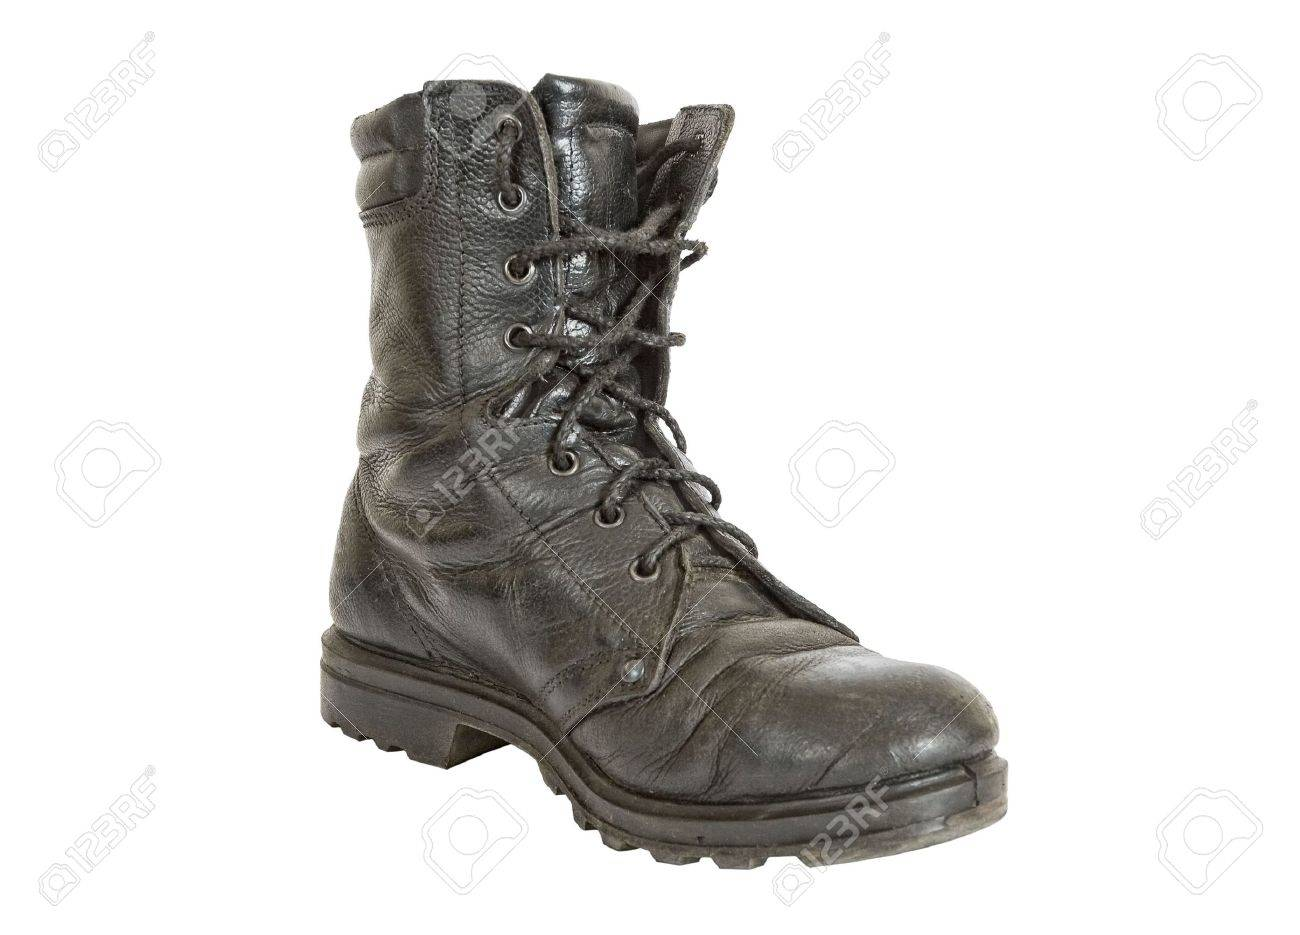 Old black army boots on white background - 6593516